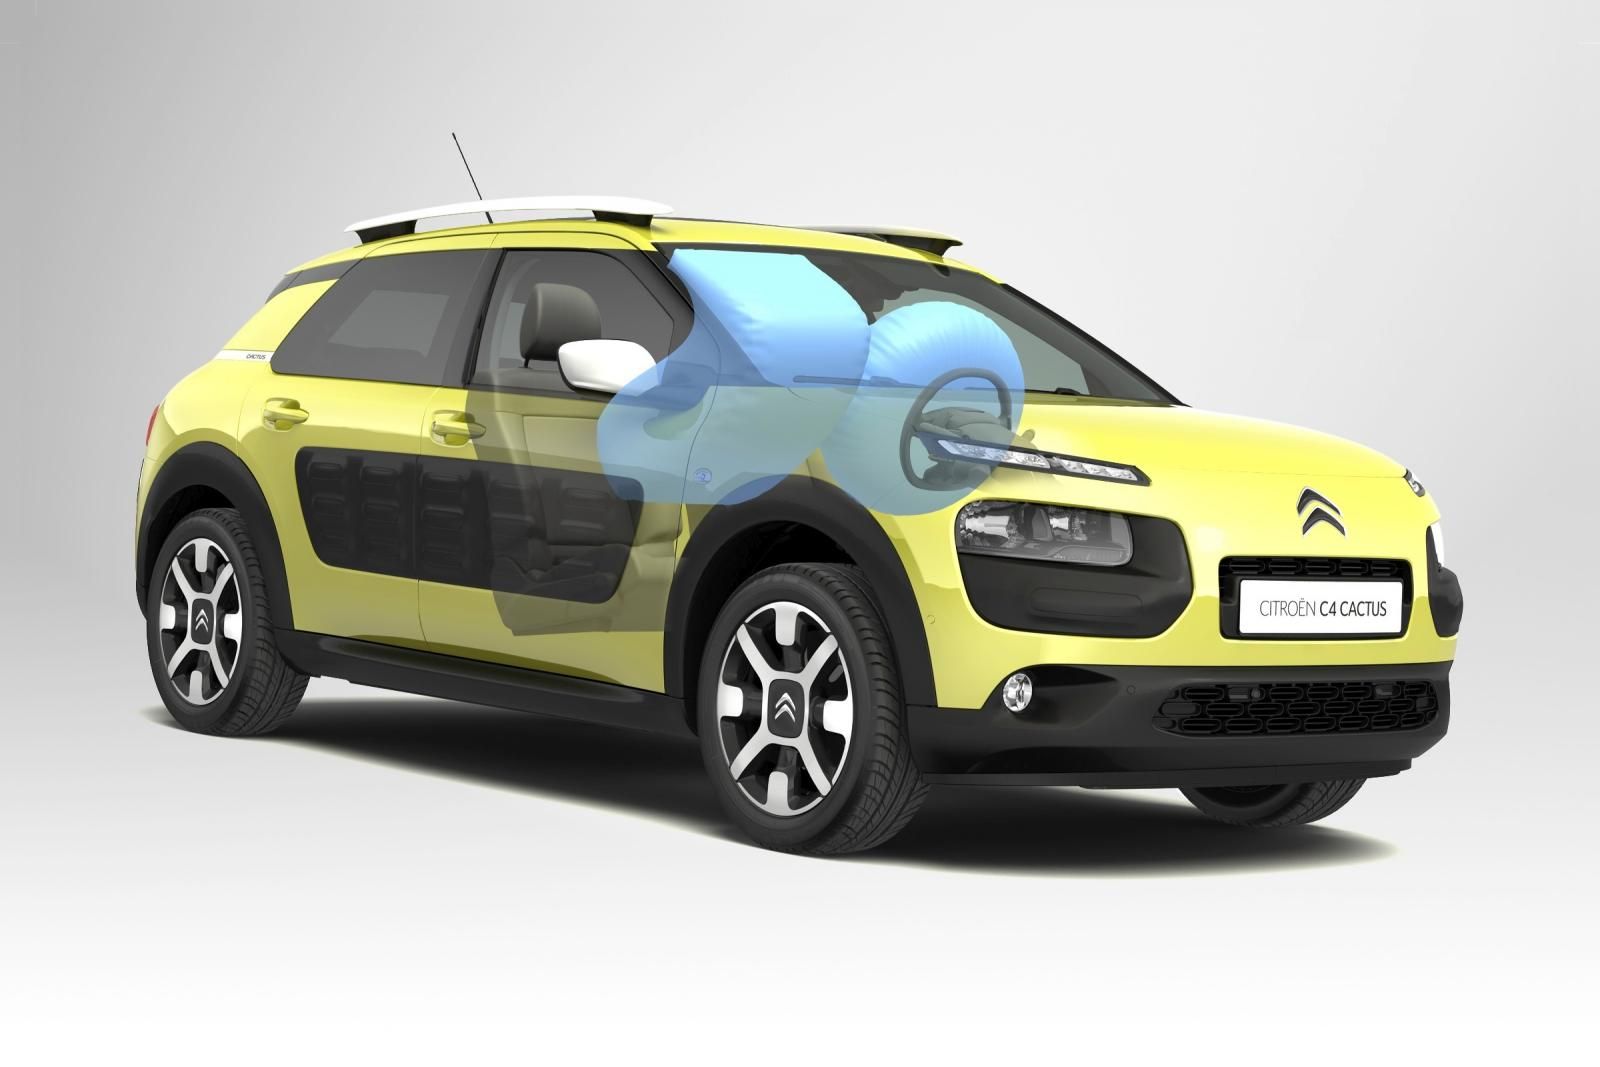 C4 Cactus, 2014., model Airbags, 2014.